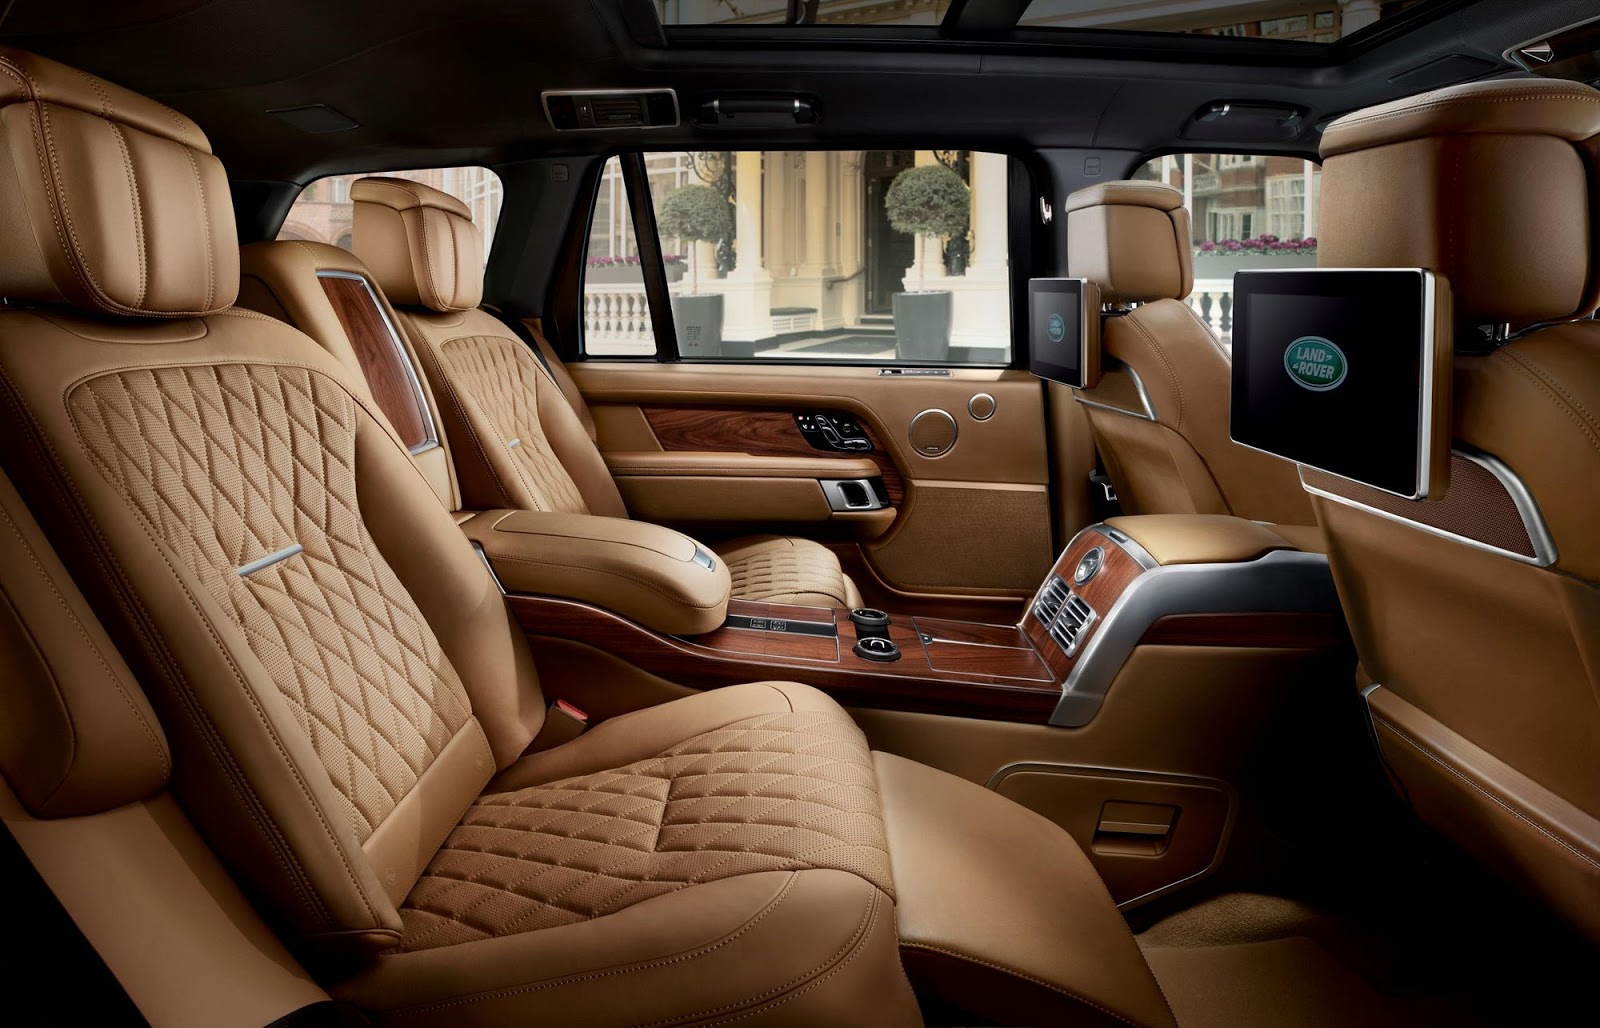 2018 Range Rover SVAutobiography Is a First-Cl Luxury SUV ...